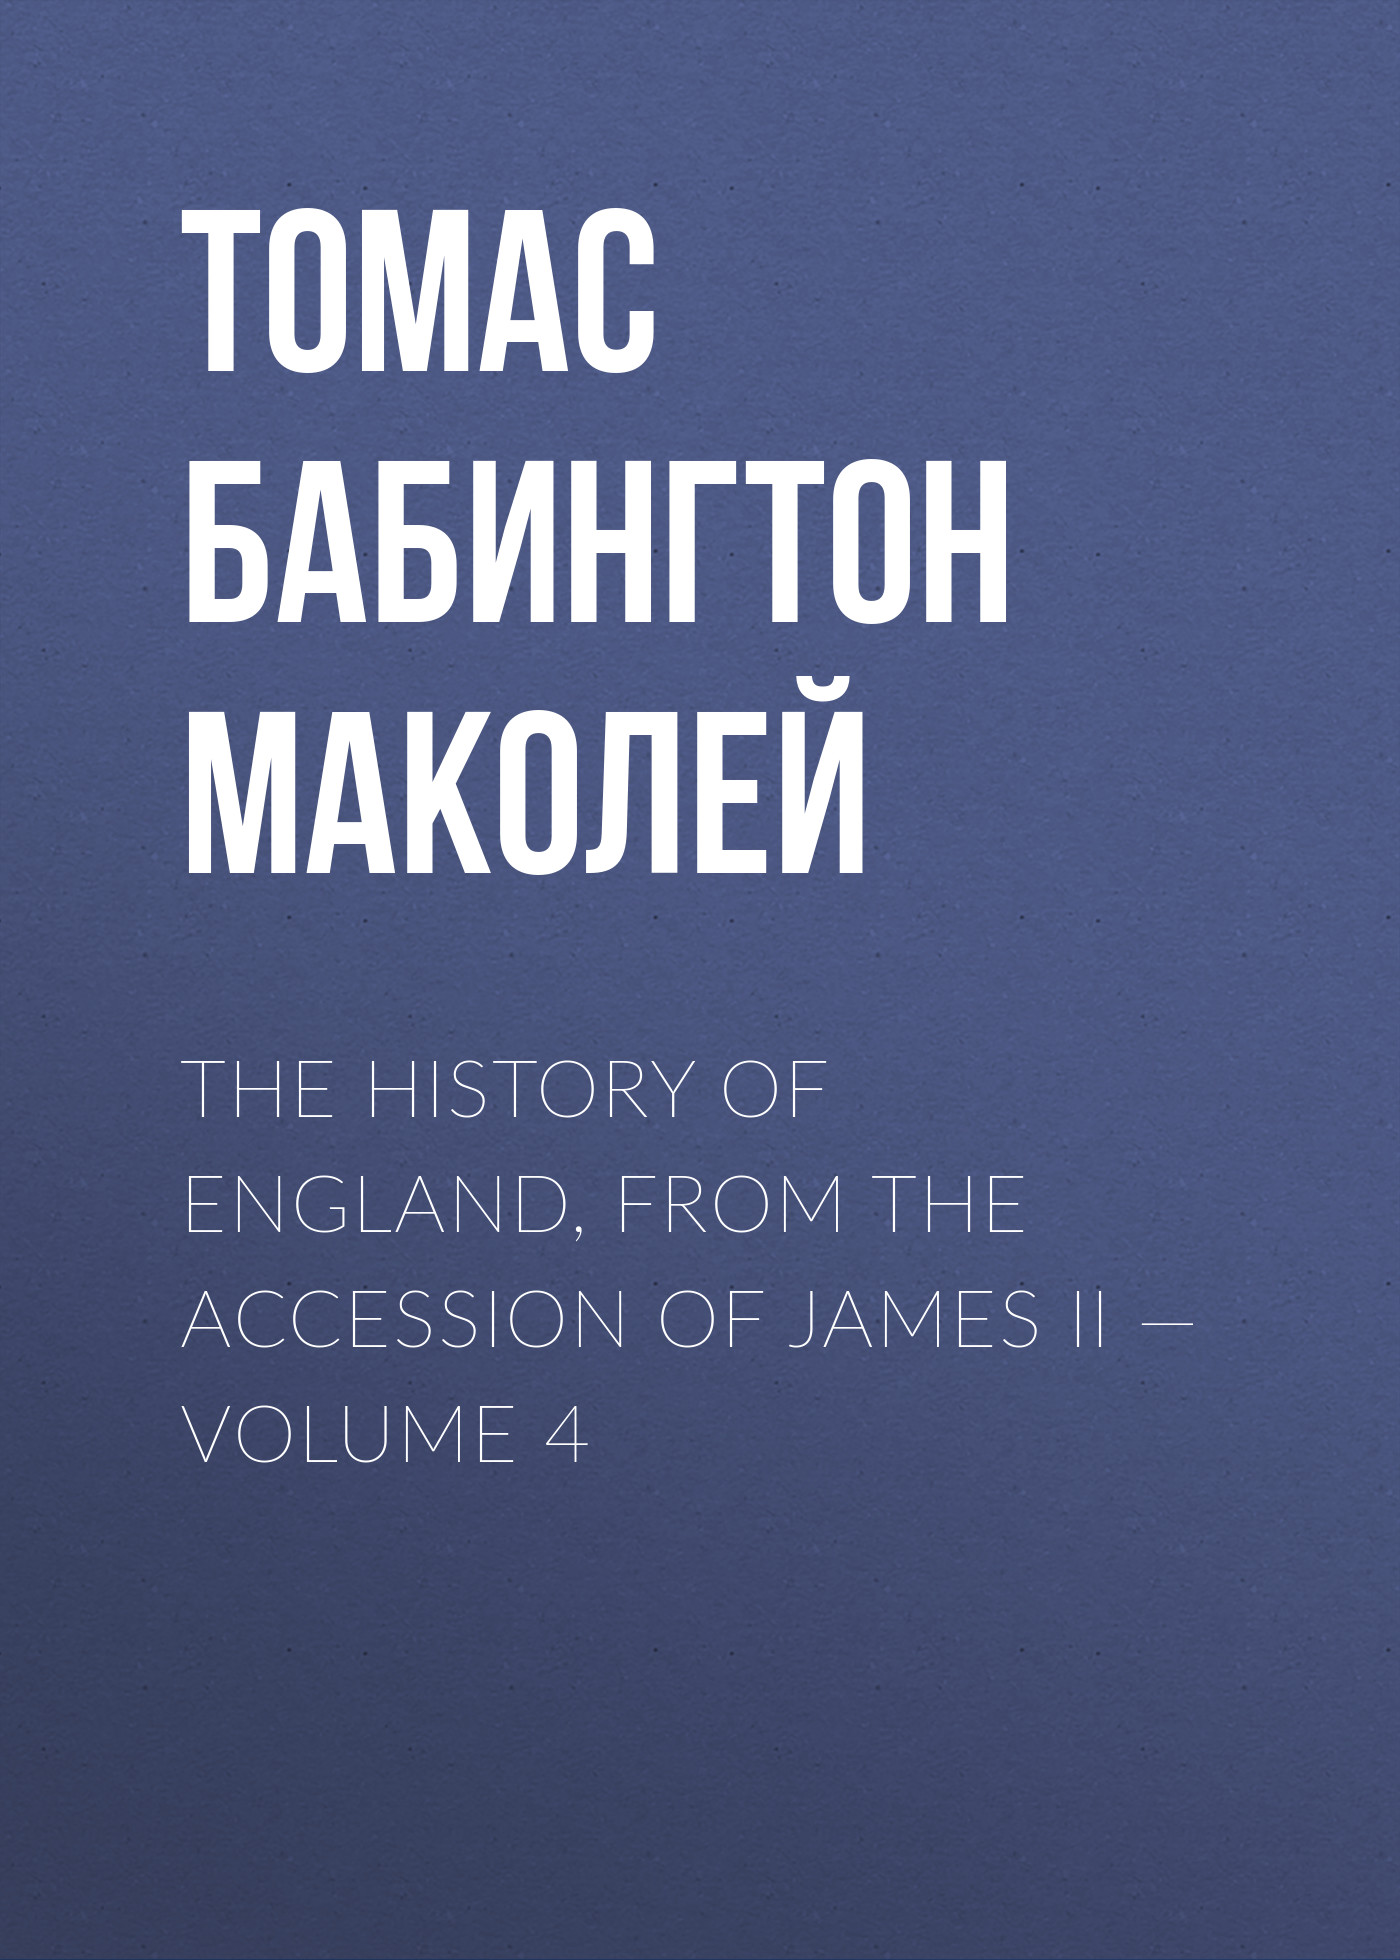 Томас Бабингтон Маколей The History of England, from the Accession of James II — Volume 4 the history of england volume 3 civil war